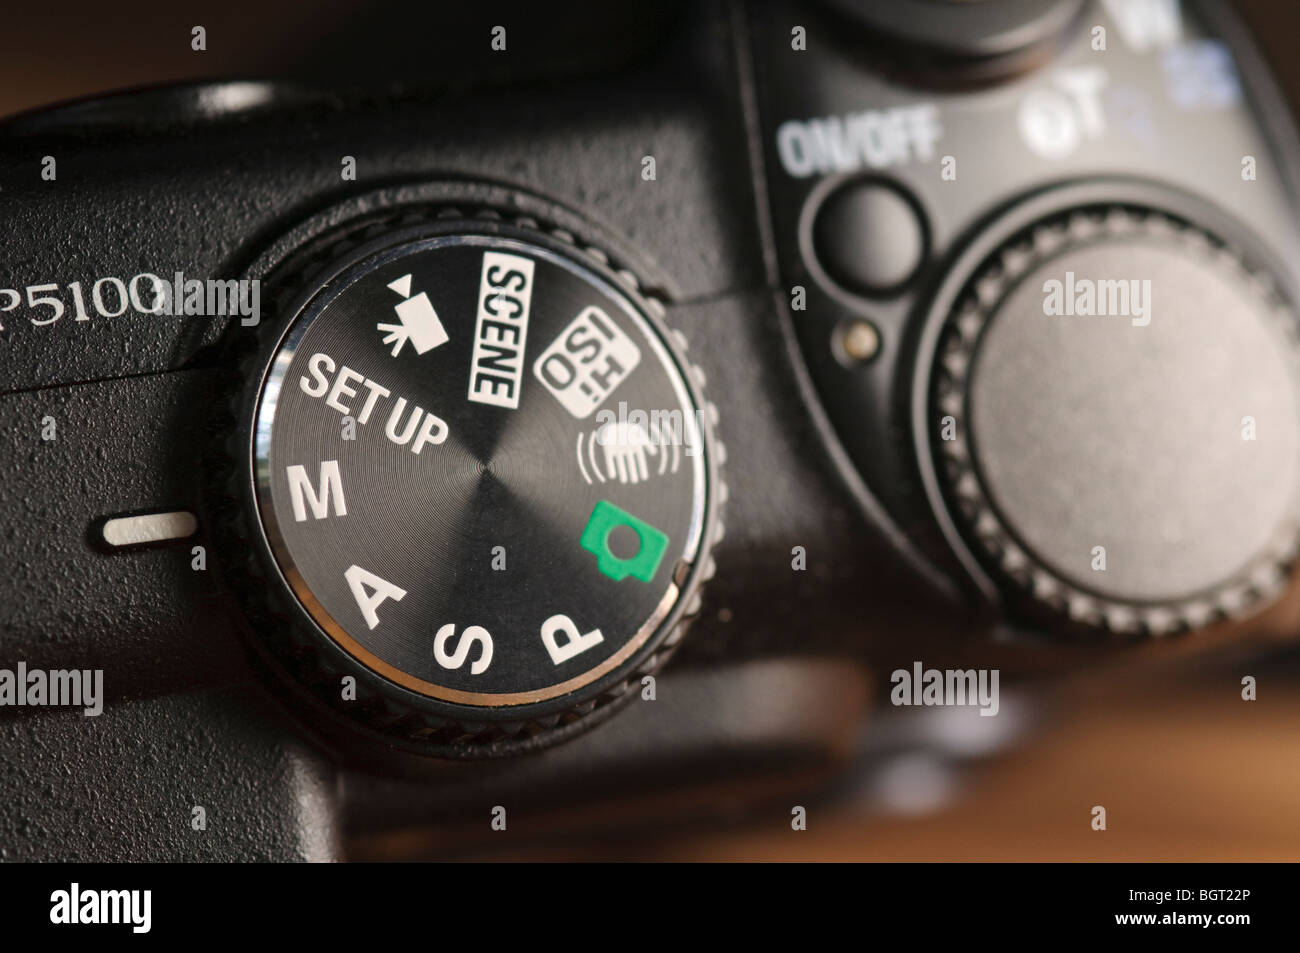 Control dial and button on digital compact camera - Stock Image